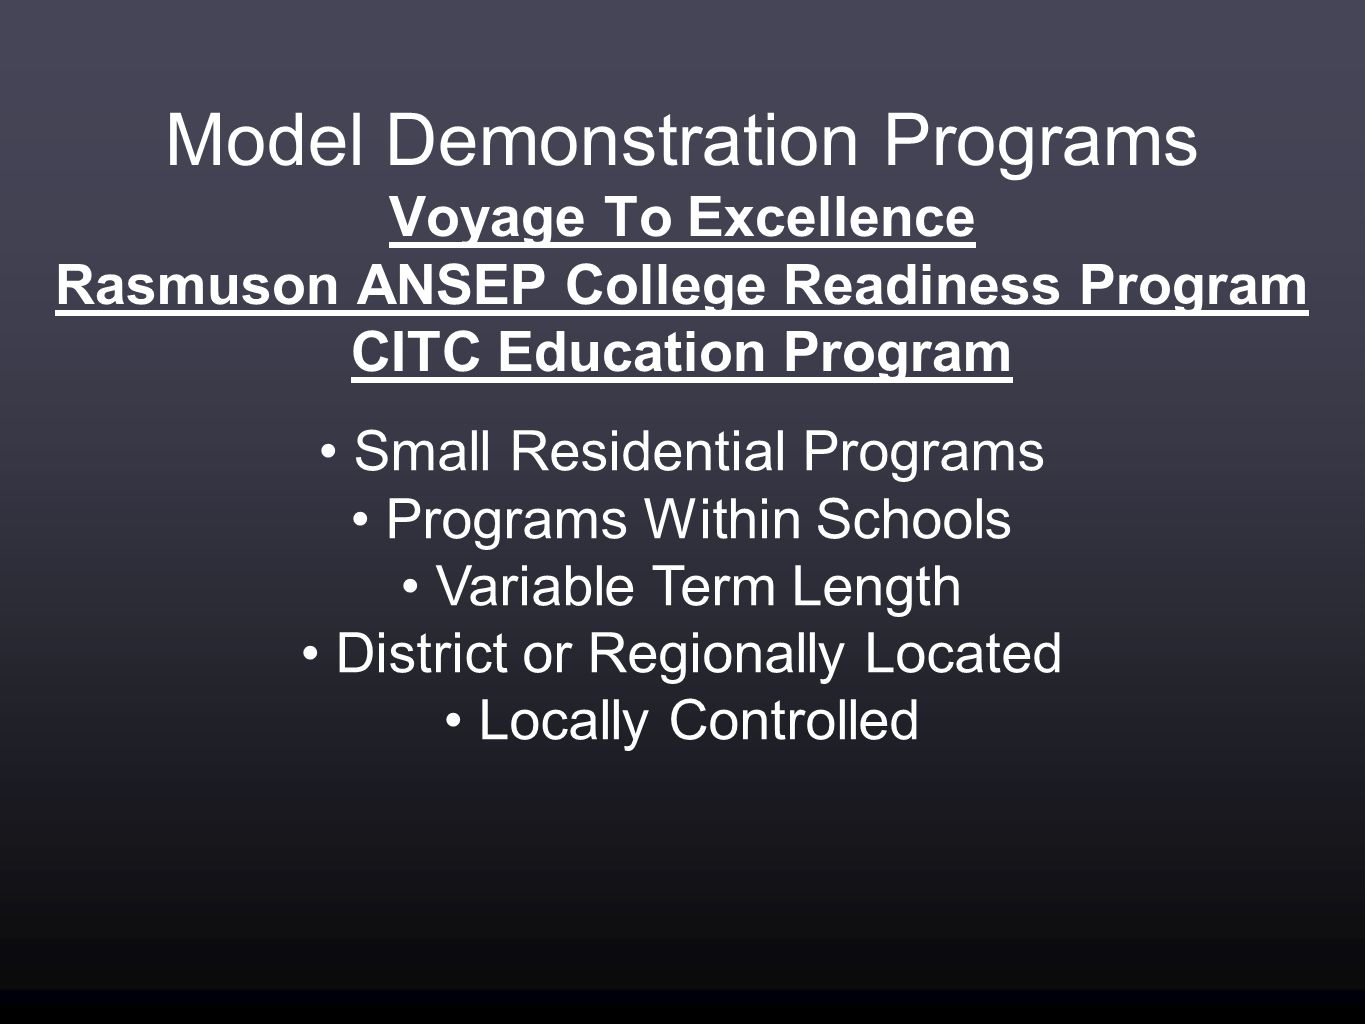 Model Demonstration Programs Voyage To Excellence Rasmuson ANSEP College Readiness Program CITC Education Program Small Residential Programs Programs